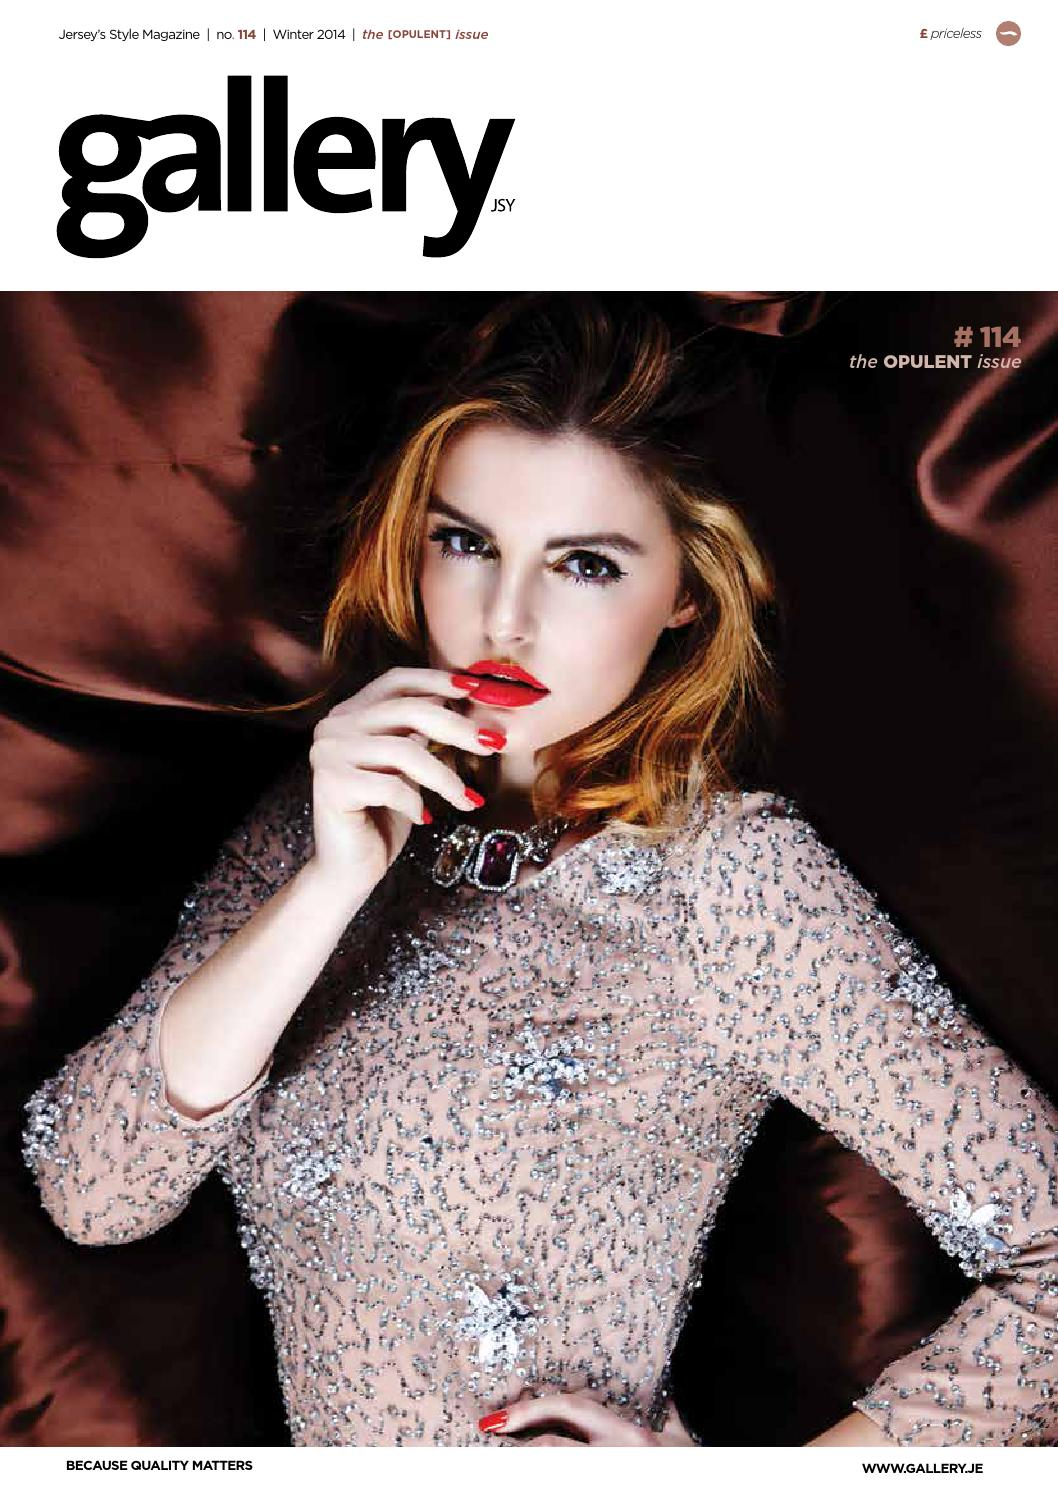 c55a78bb974 Gallery #115 - The OPULENT Issue by factory - issuu